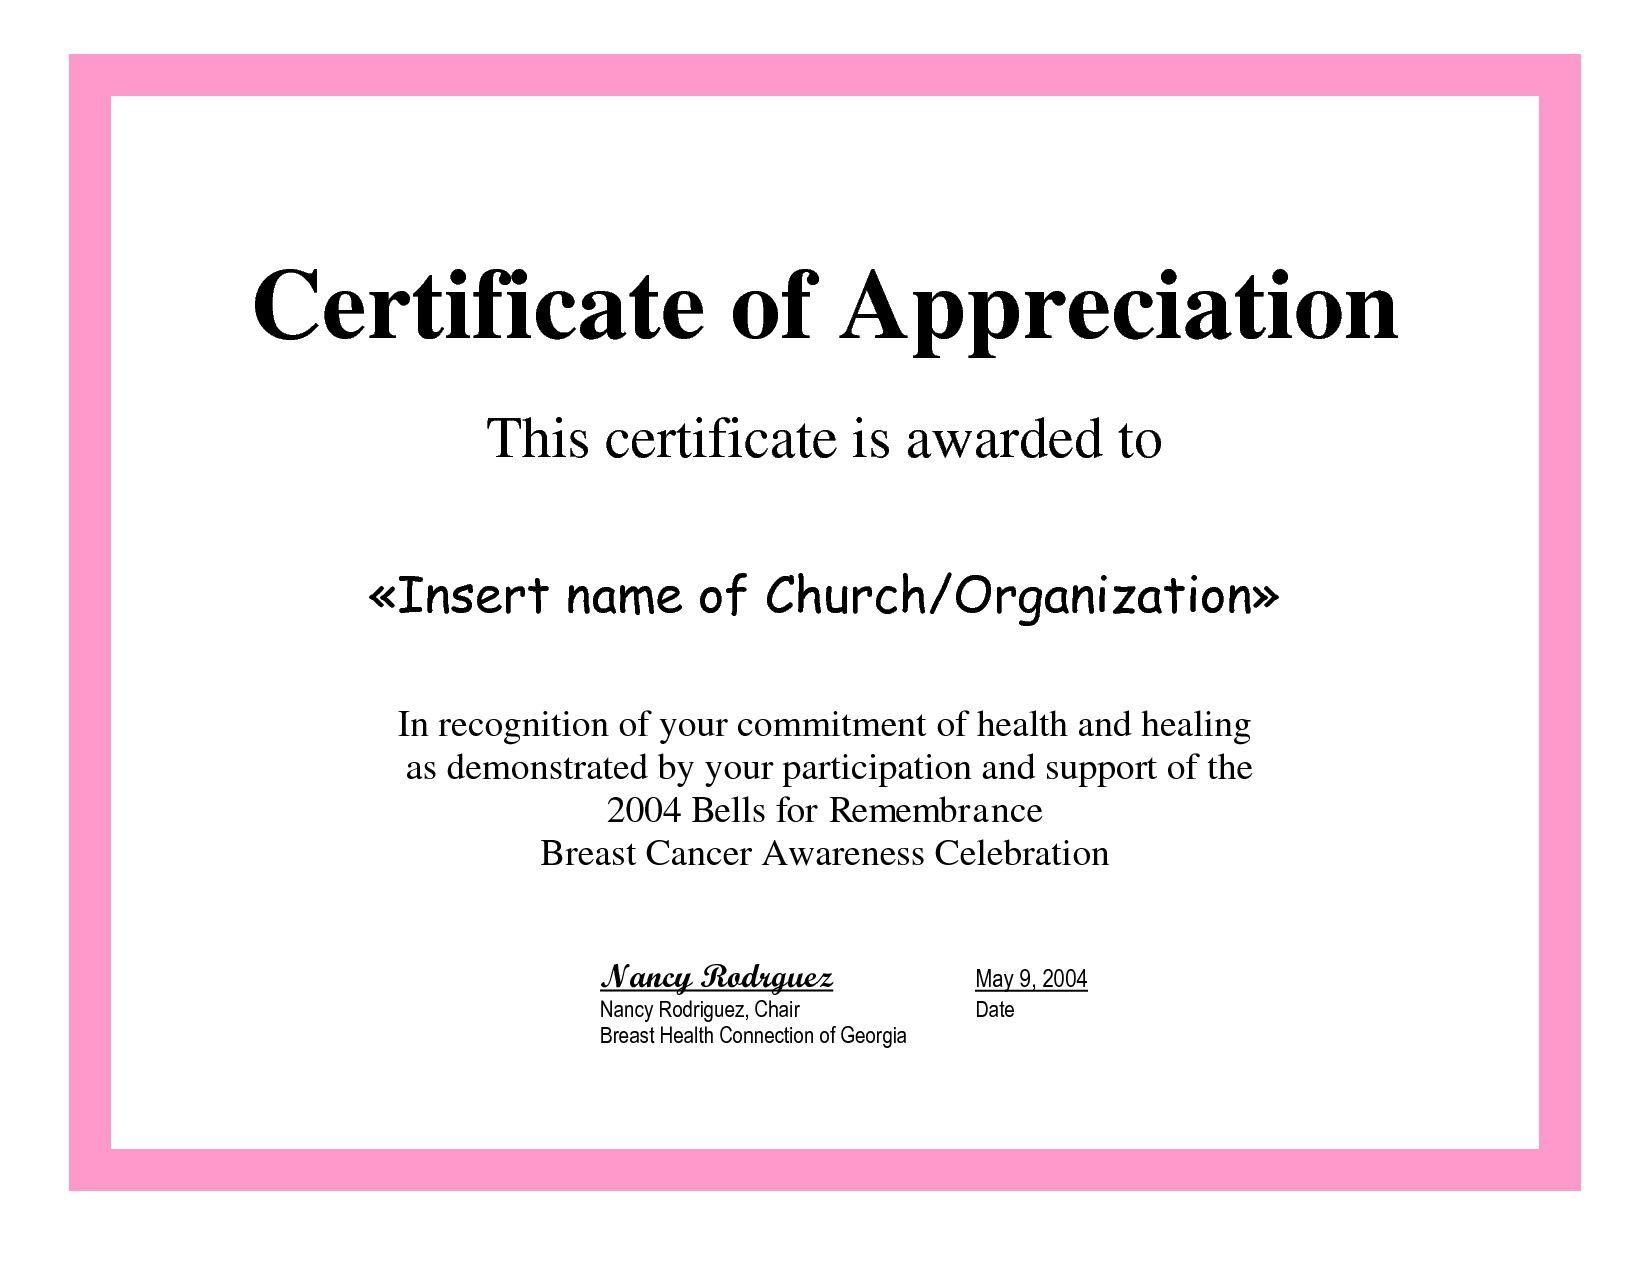 Employee Recognition Award Certificate Template